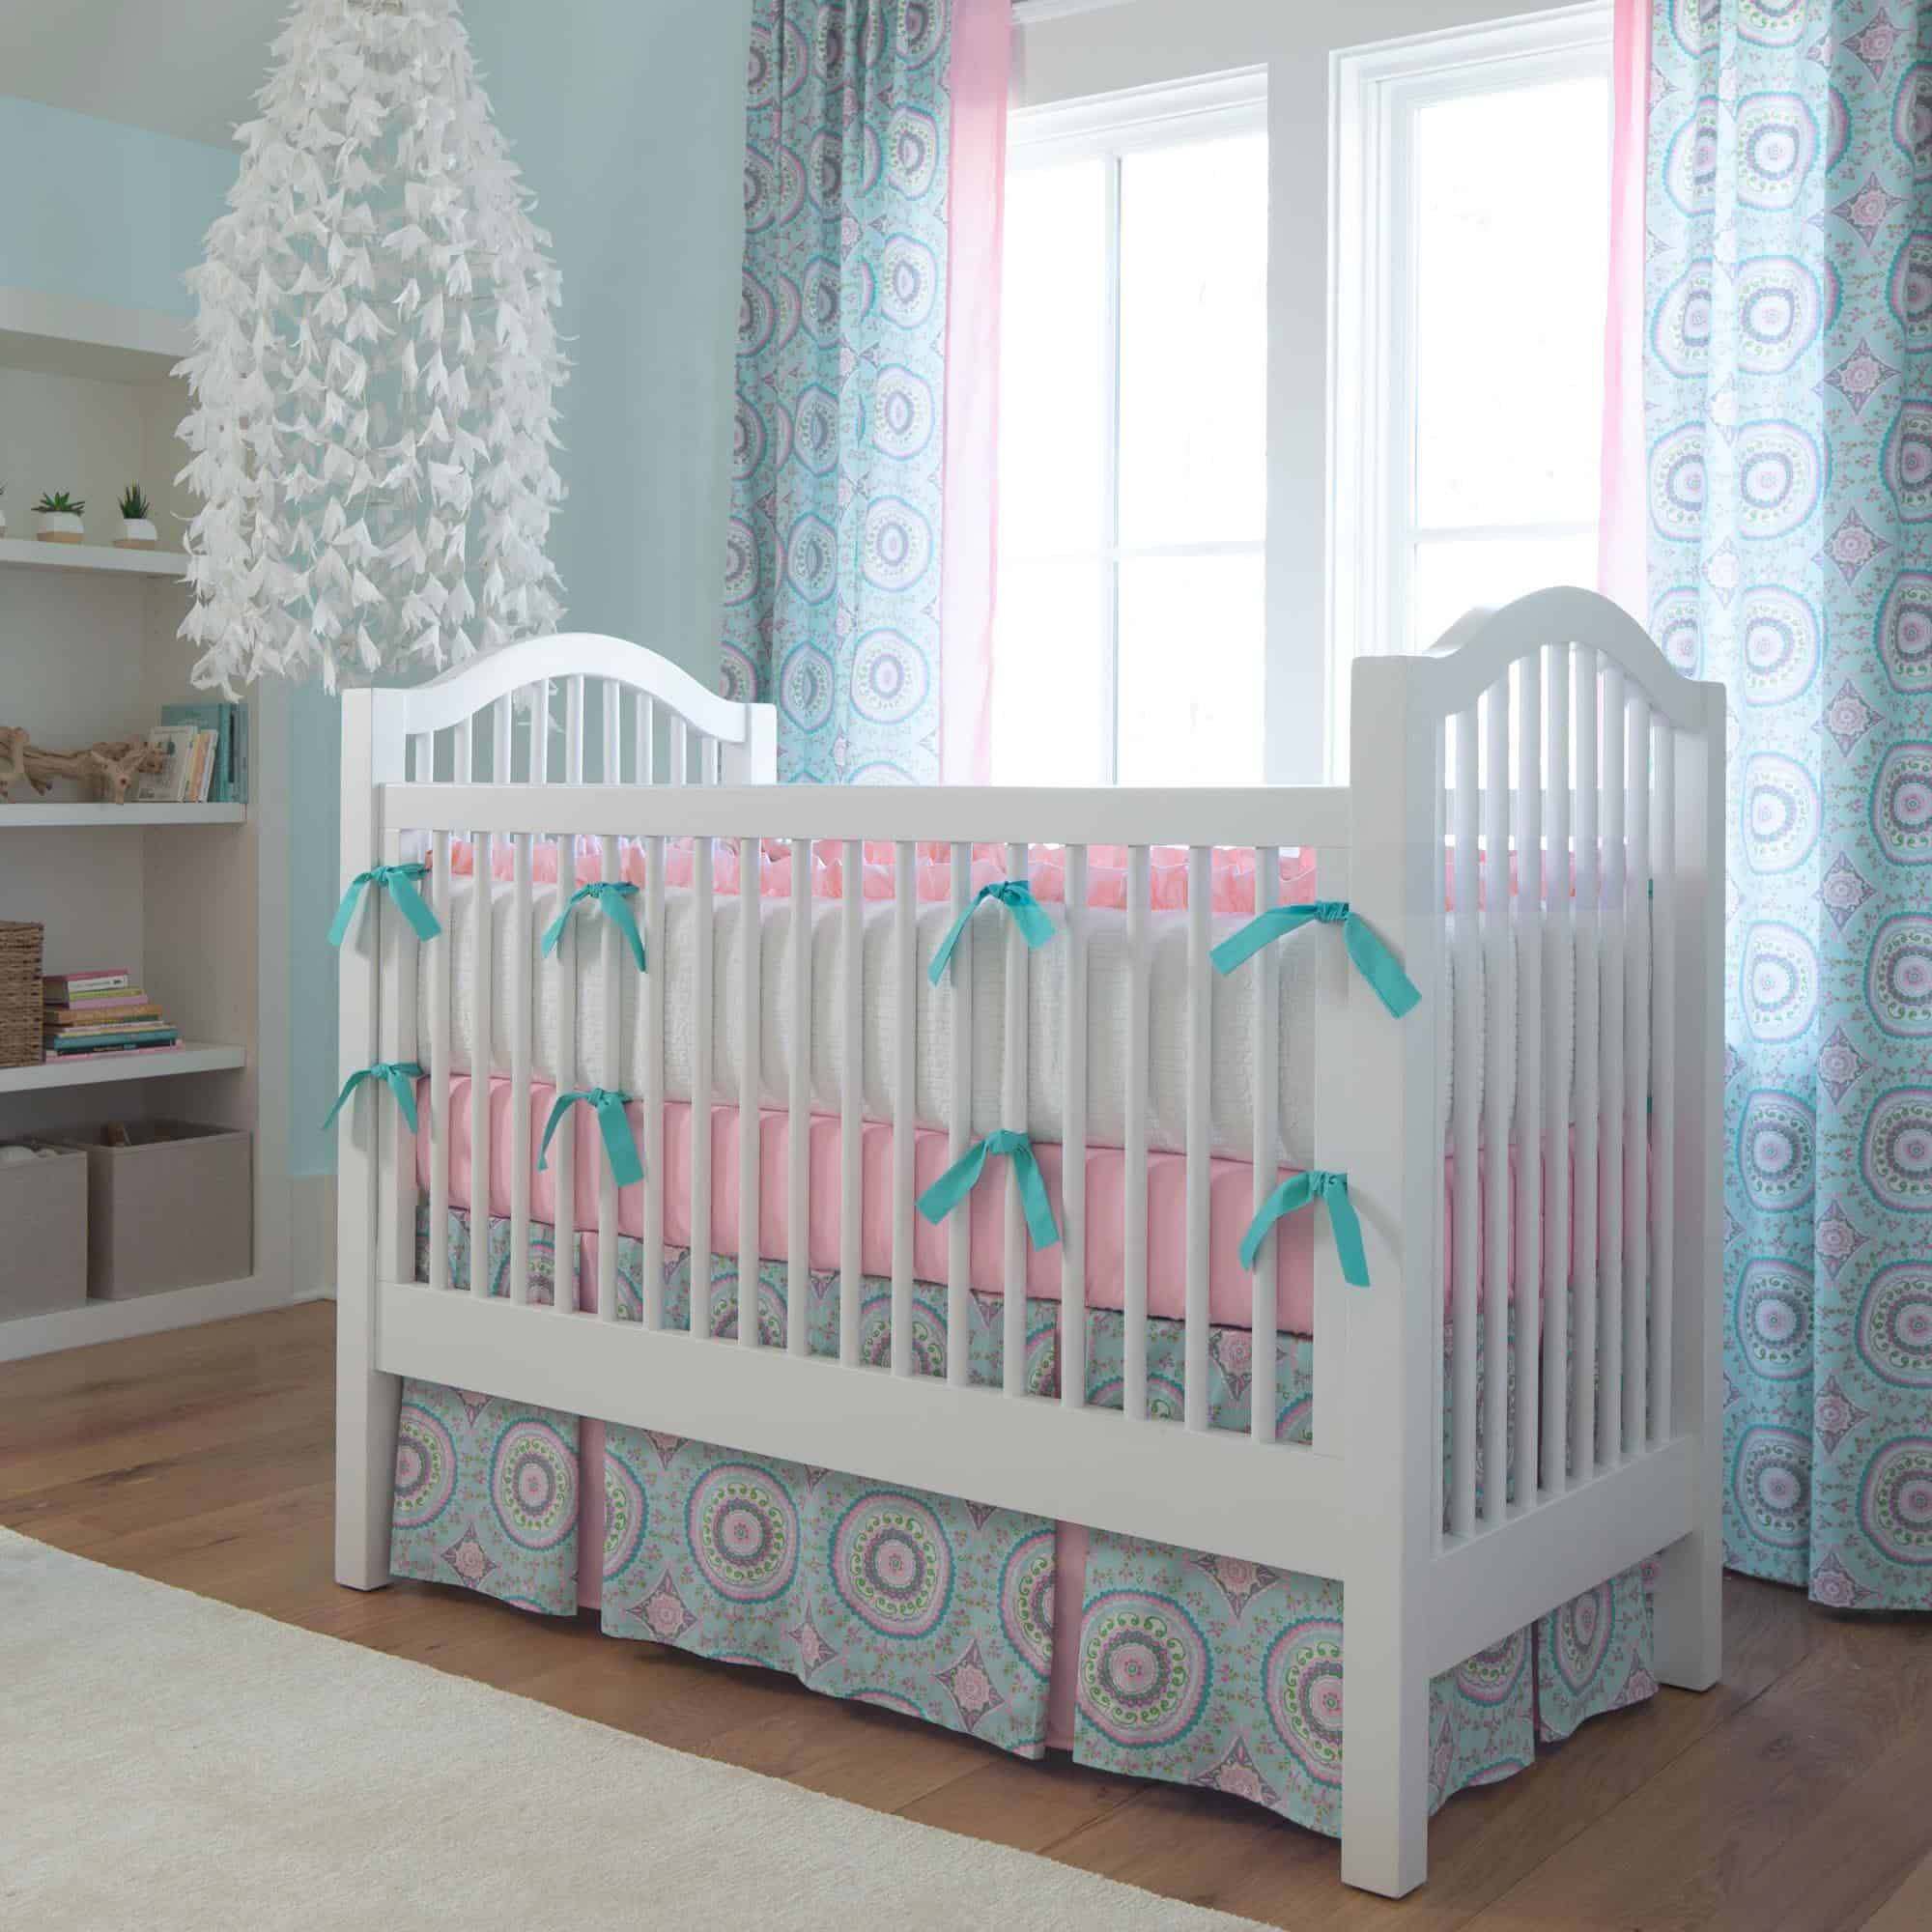 Tips On Finding The Best Crib